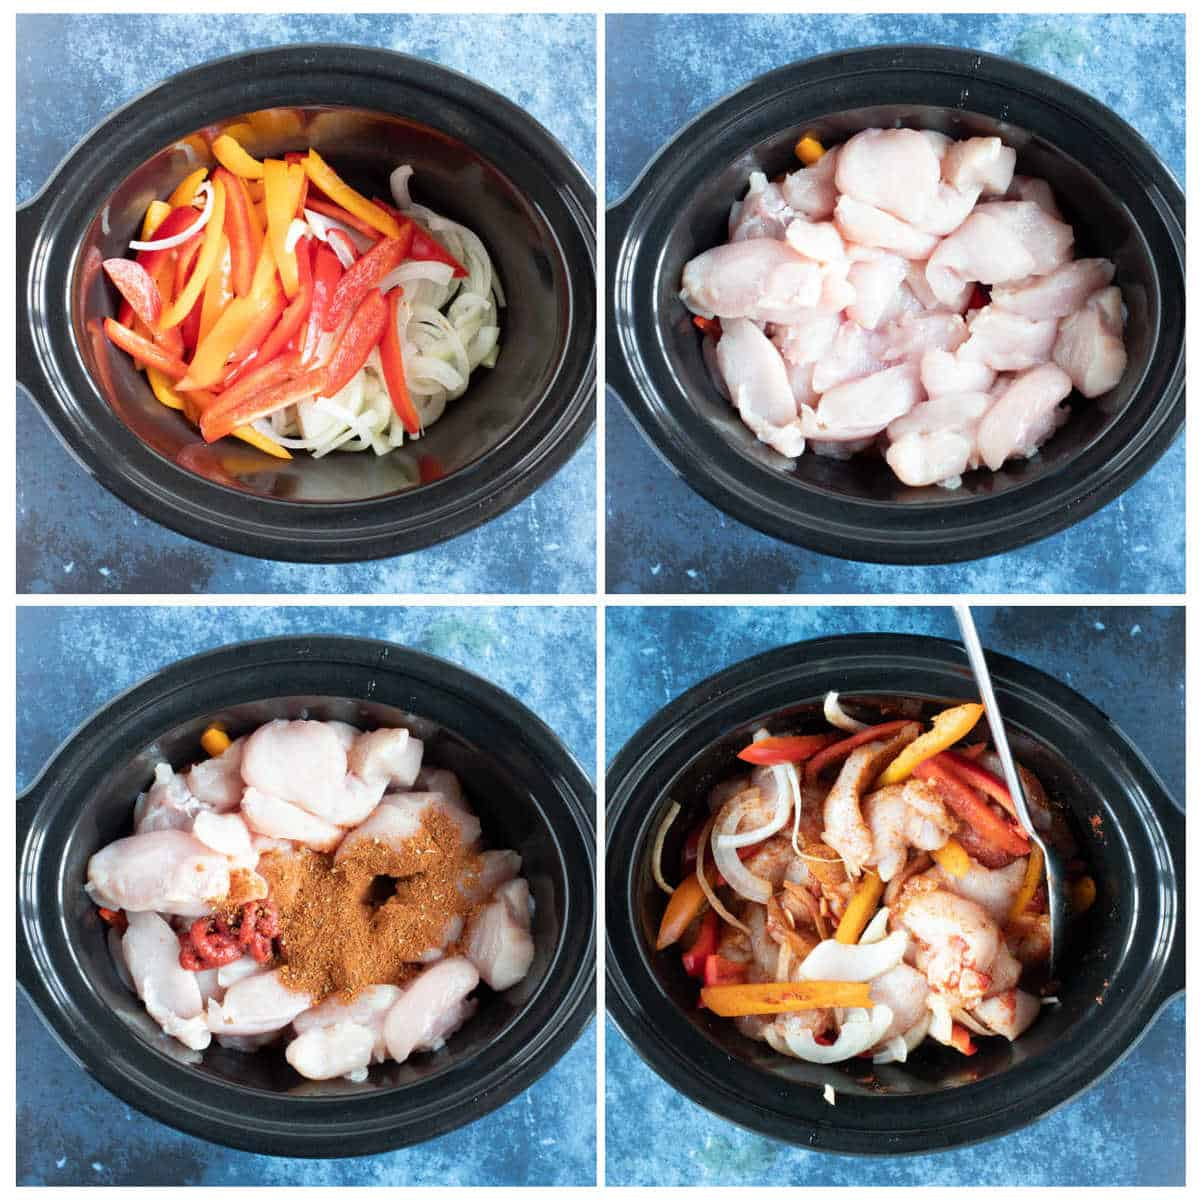 Step by step photo instructions for making slow cooker chicken fajitas